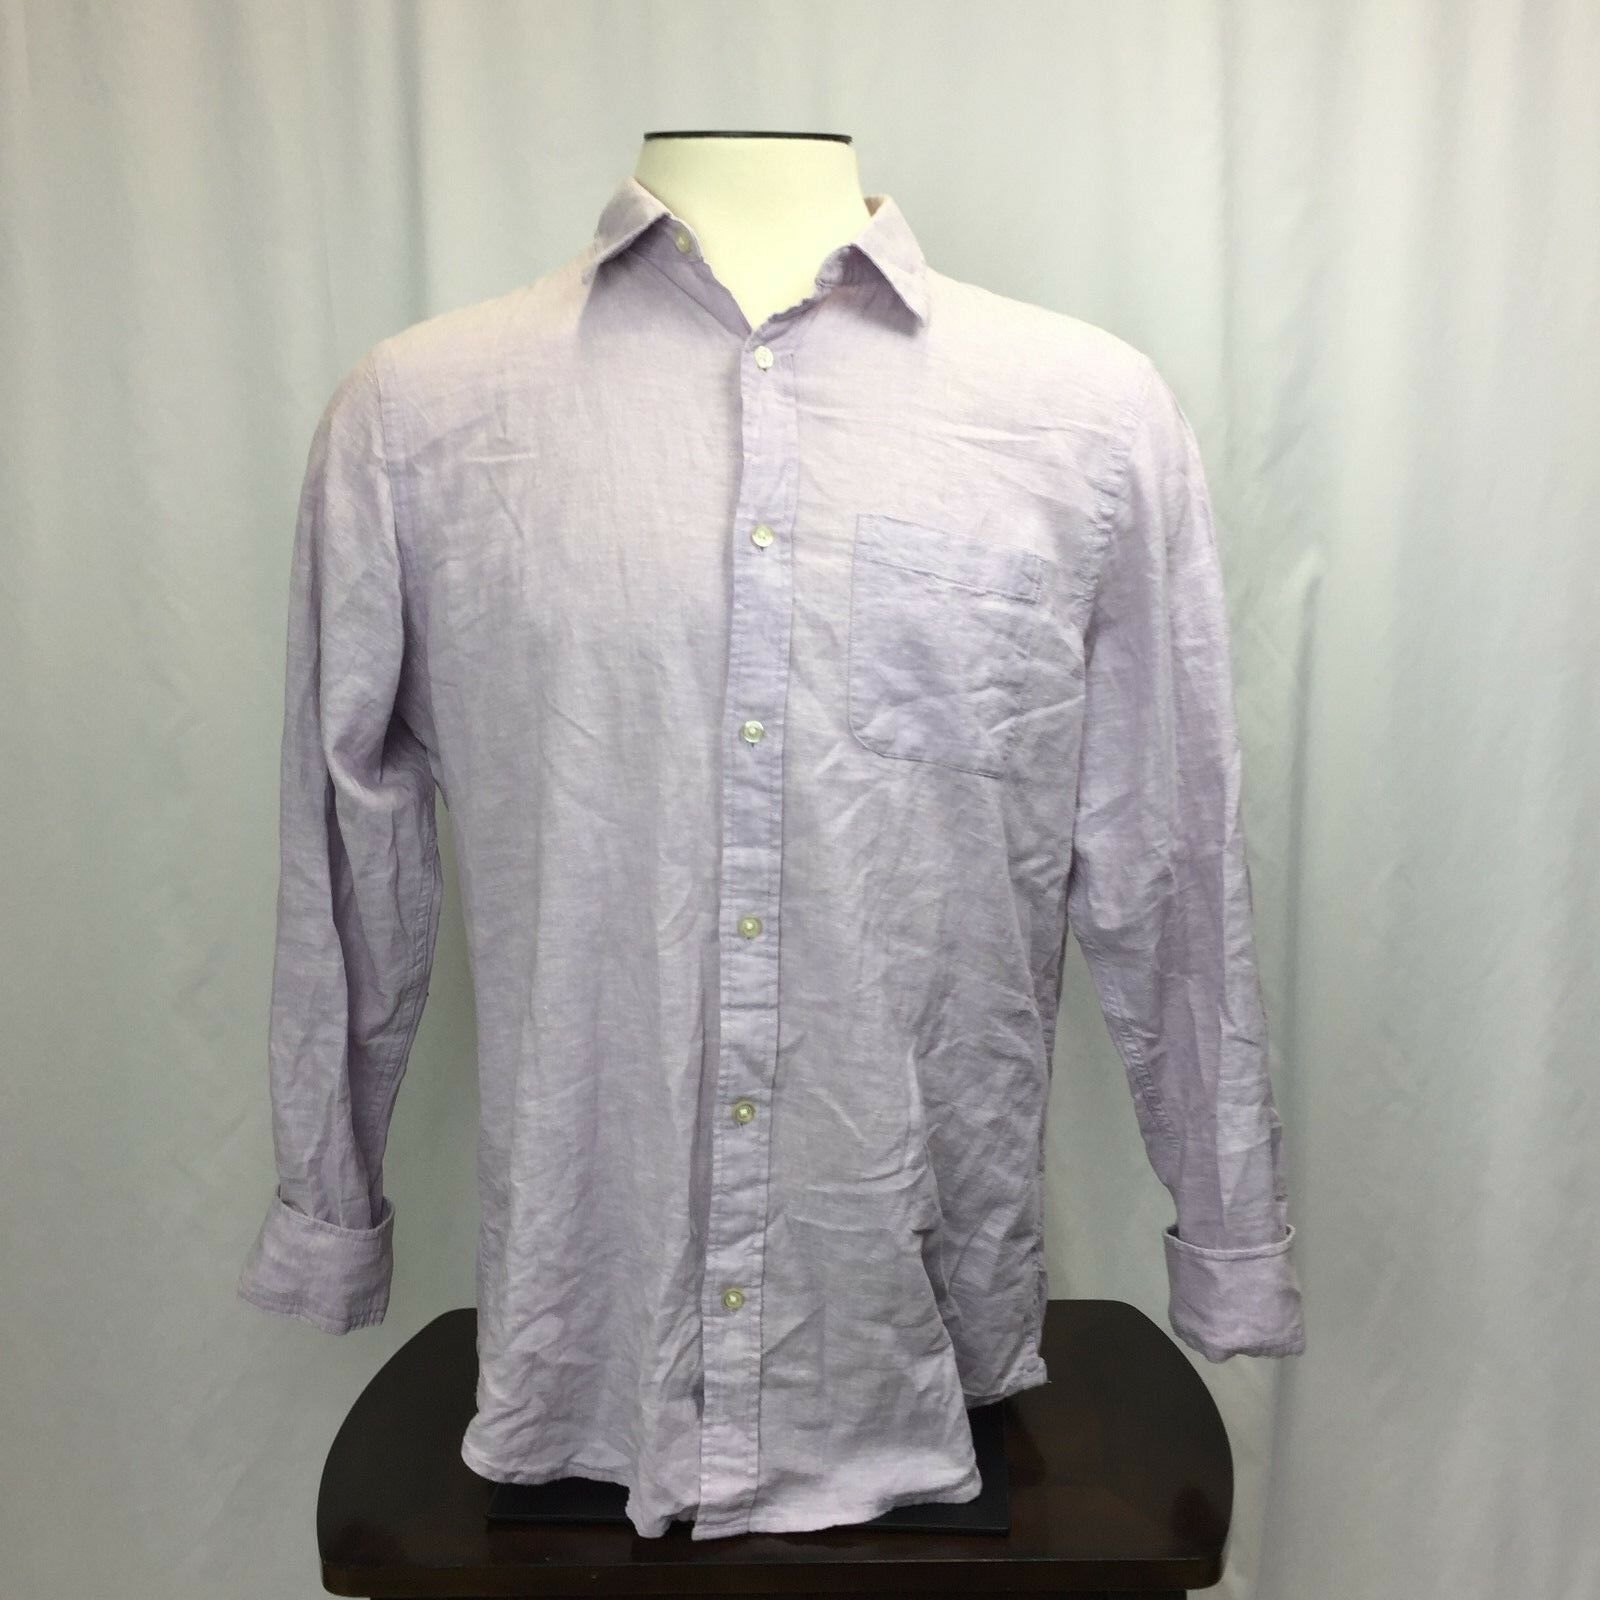 Banana Republic Men's Long Sleeve Button Up Large - $15.29